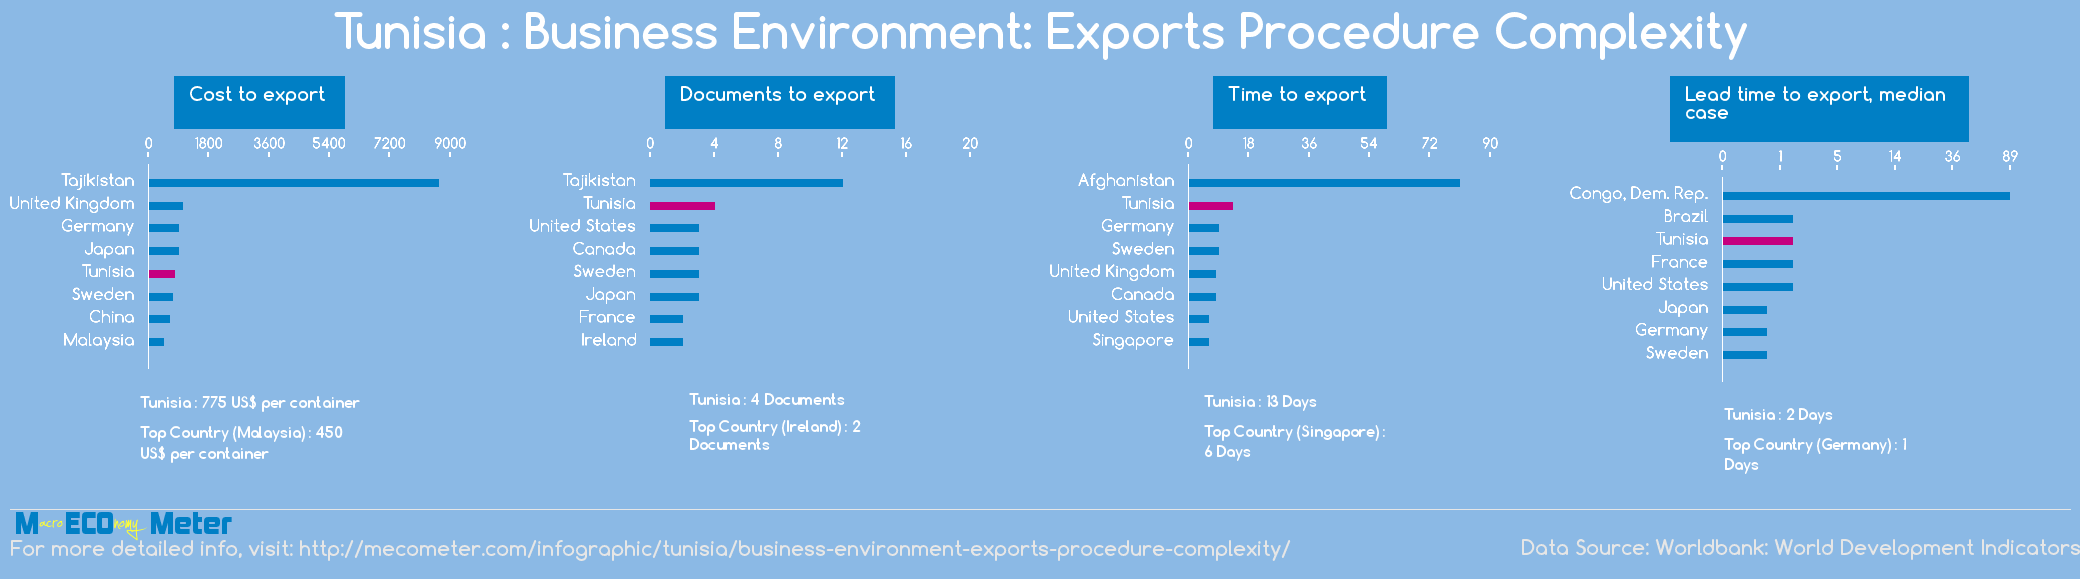 Tunisia : Business Environment: Exports Procedure Complexity